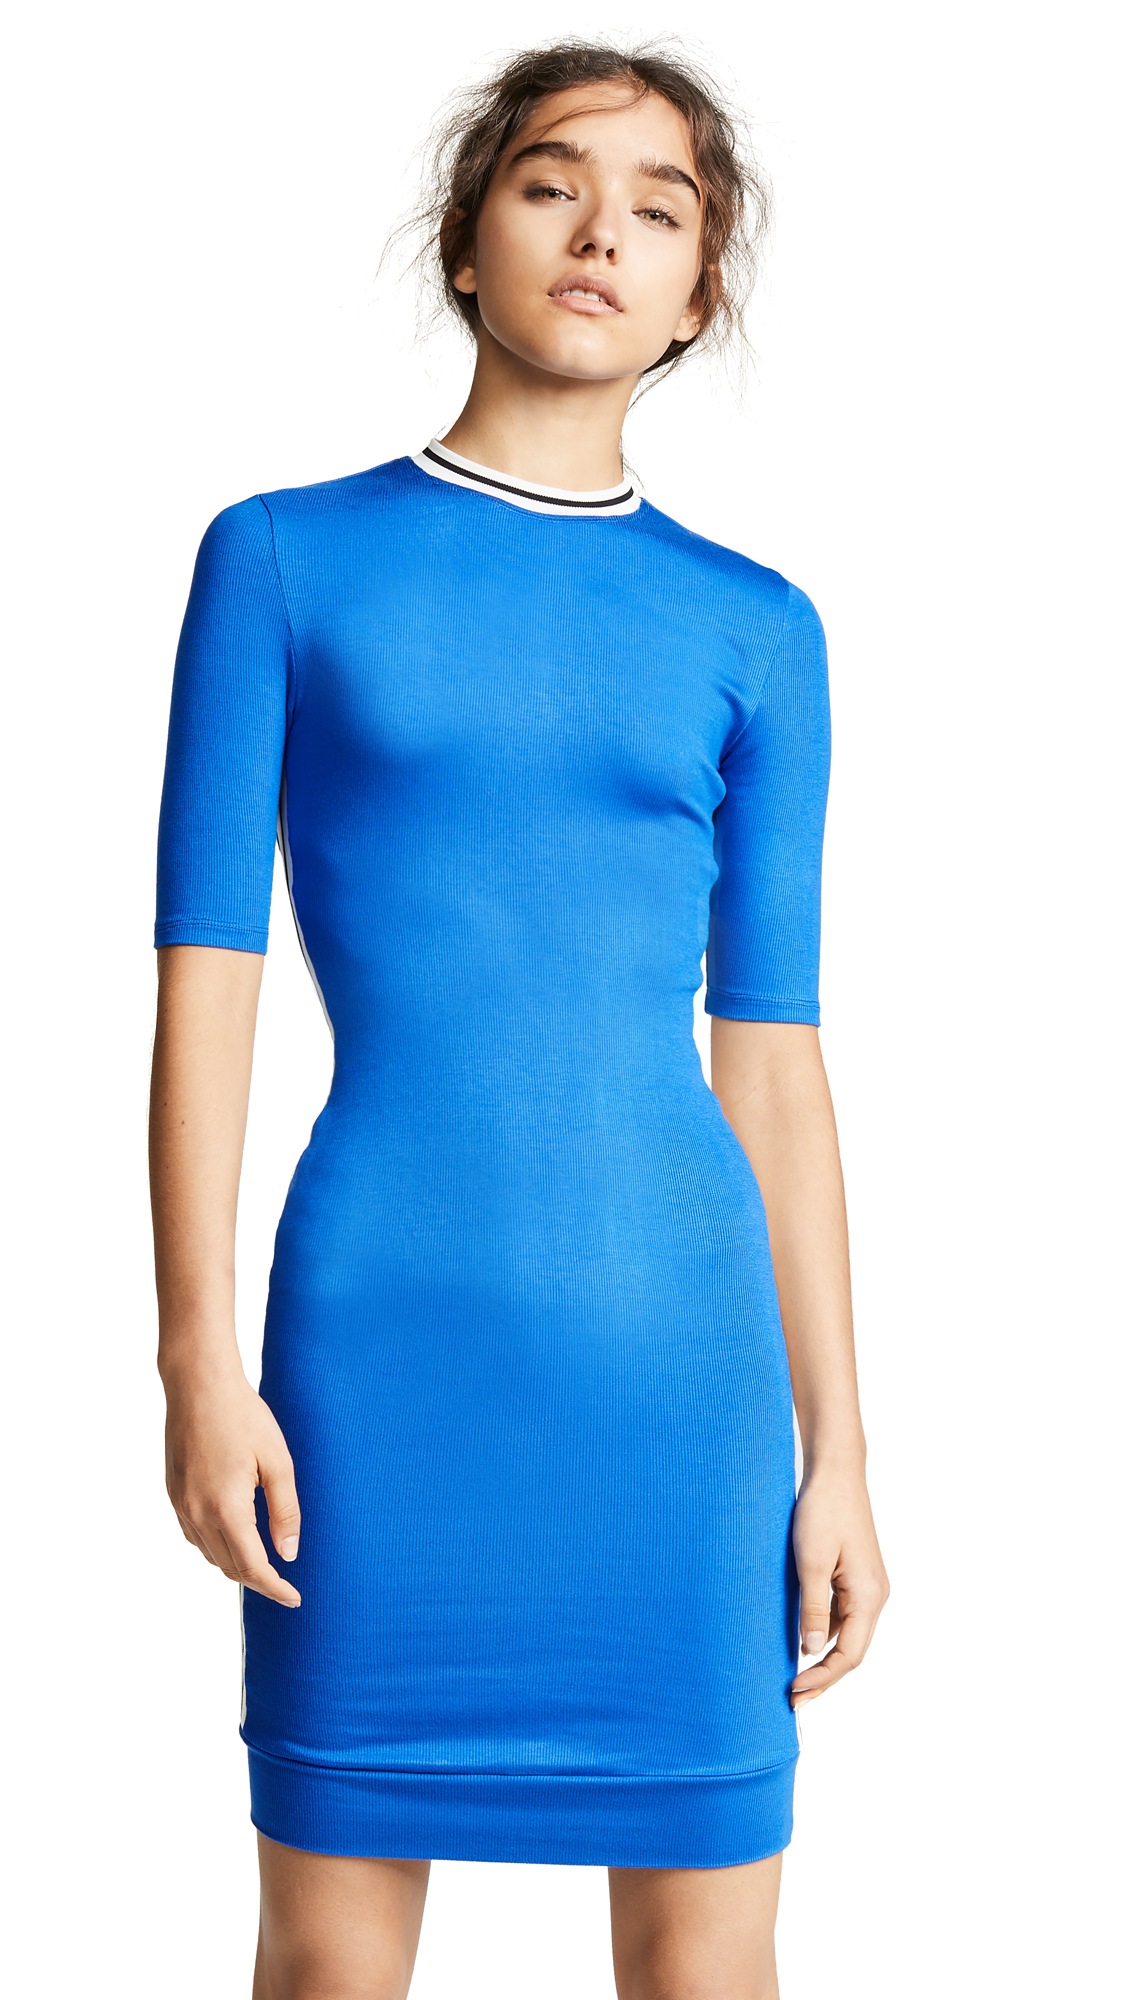 TWENTY MONTREAL Ribbed Ringer Dress - Cobalt